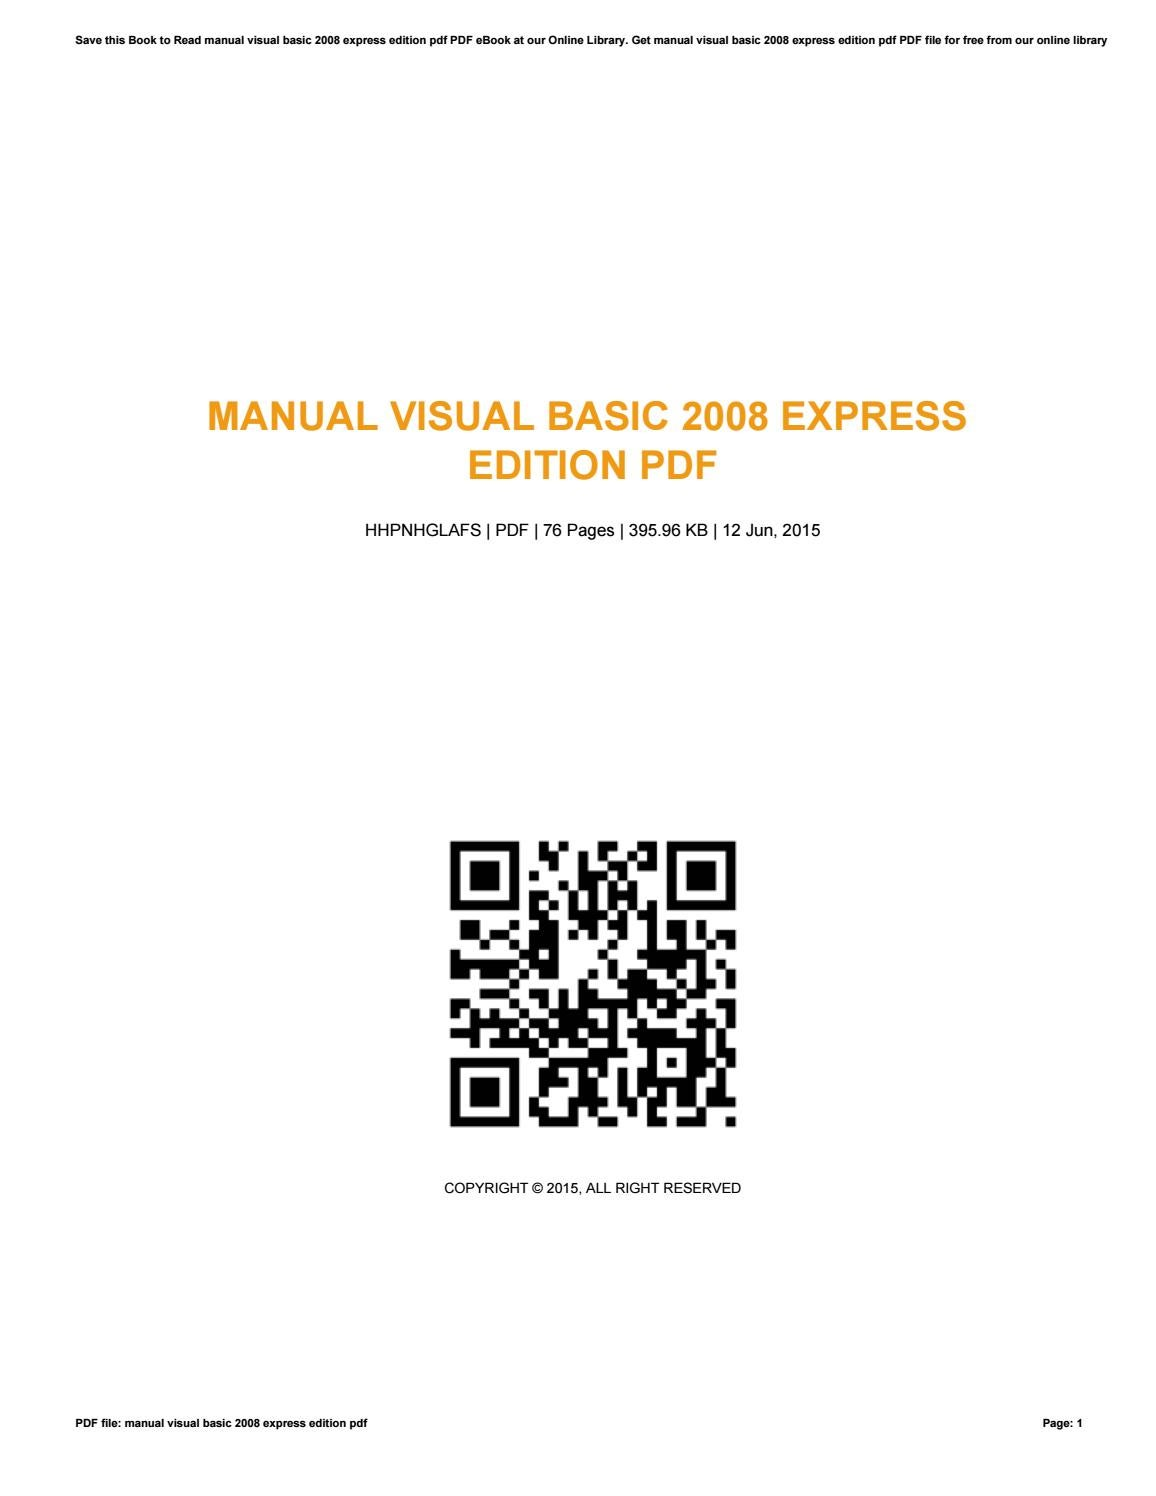 Book visual basic 2008